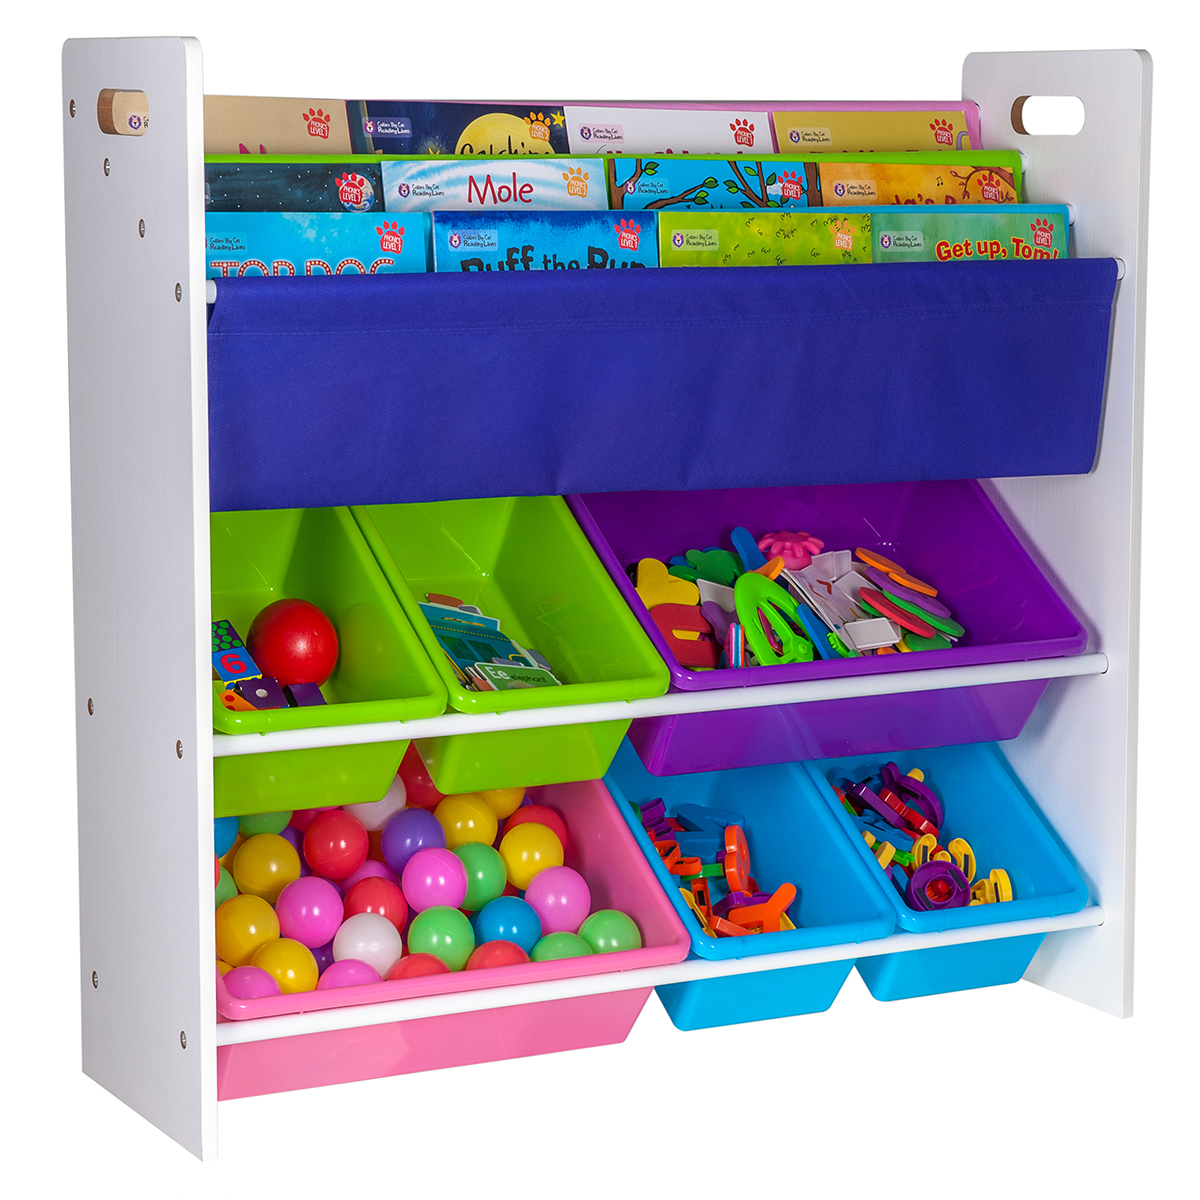 Kids Bedroom Furniture Kids Wooden Toys Online: 4 SLINGS 6 BOX CHILDREN BOOKS & TOYS STORAGE RACK WOODEN